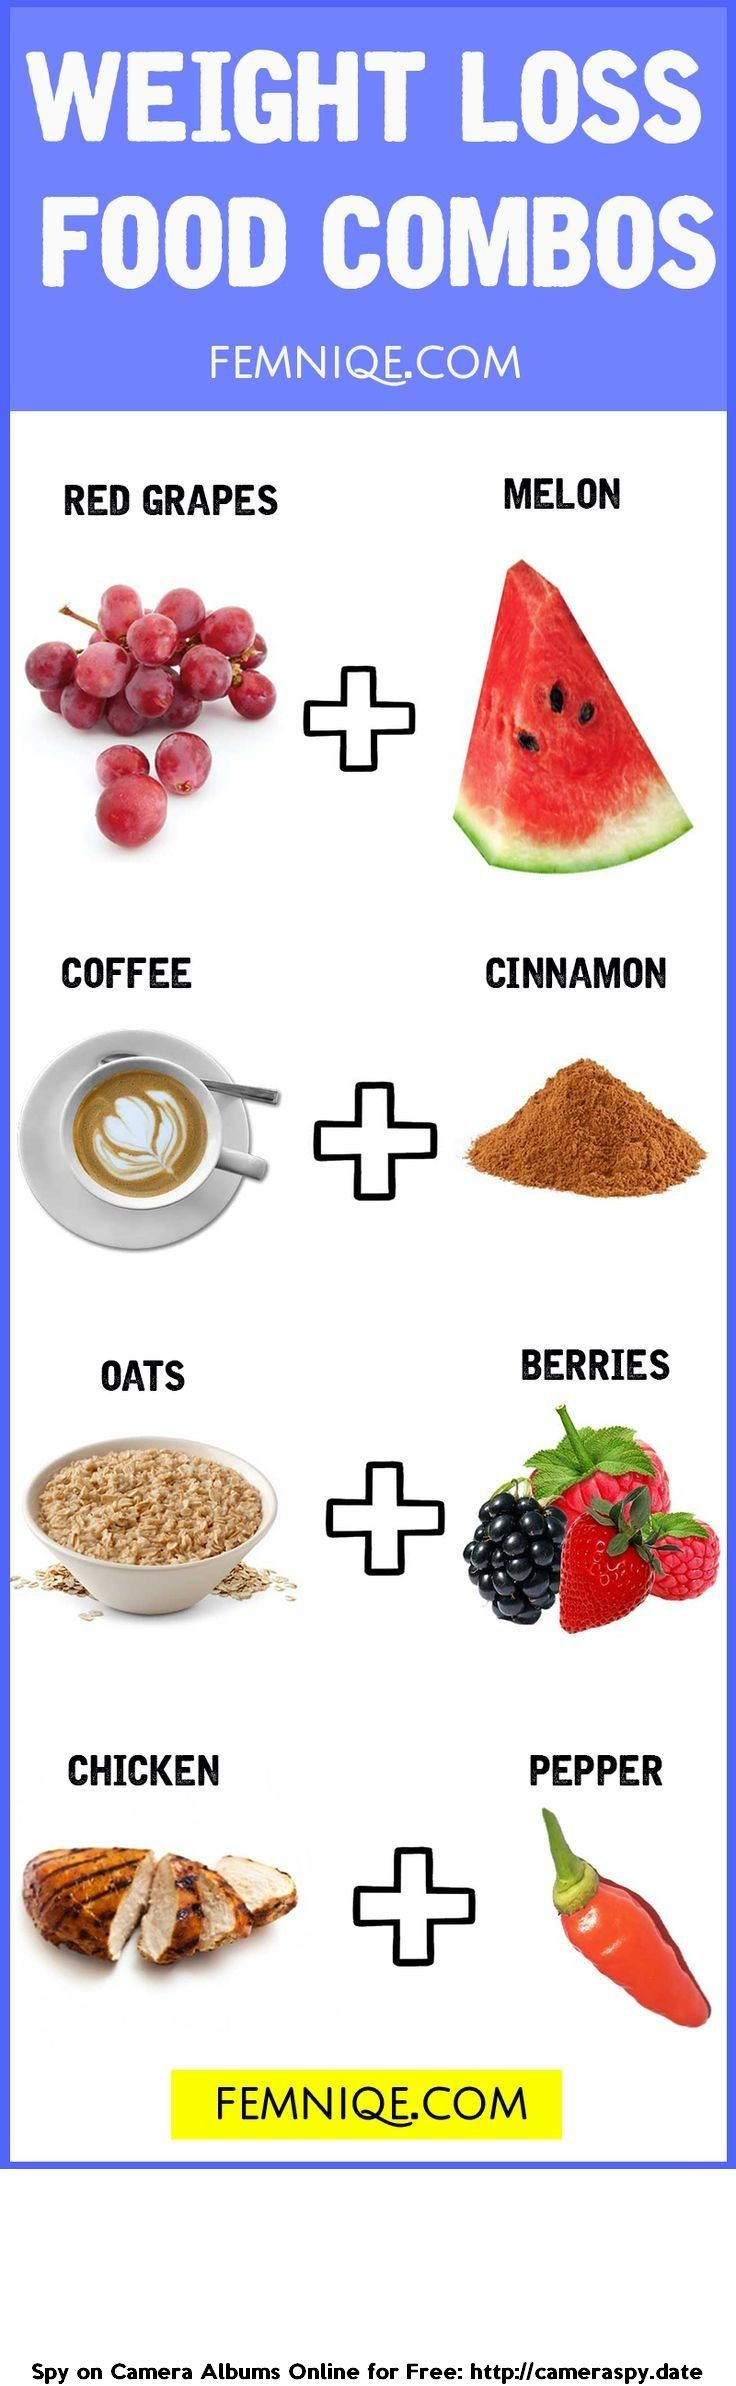 10 weight loss foods to help you lose weight fast - add these fat